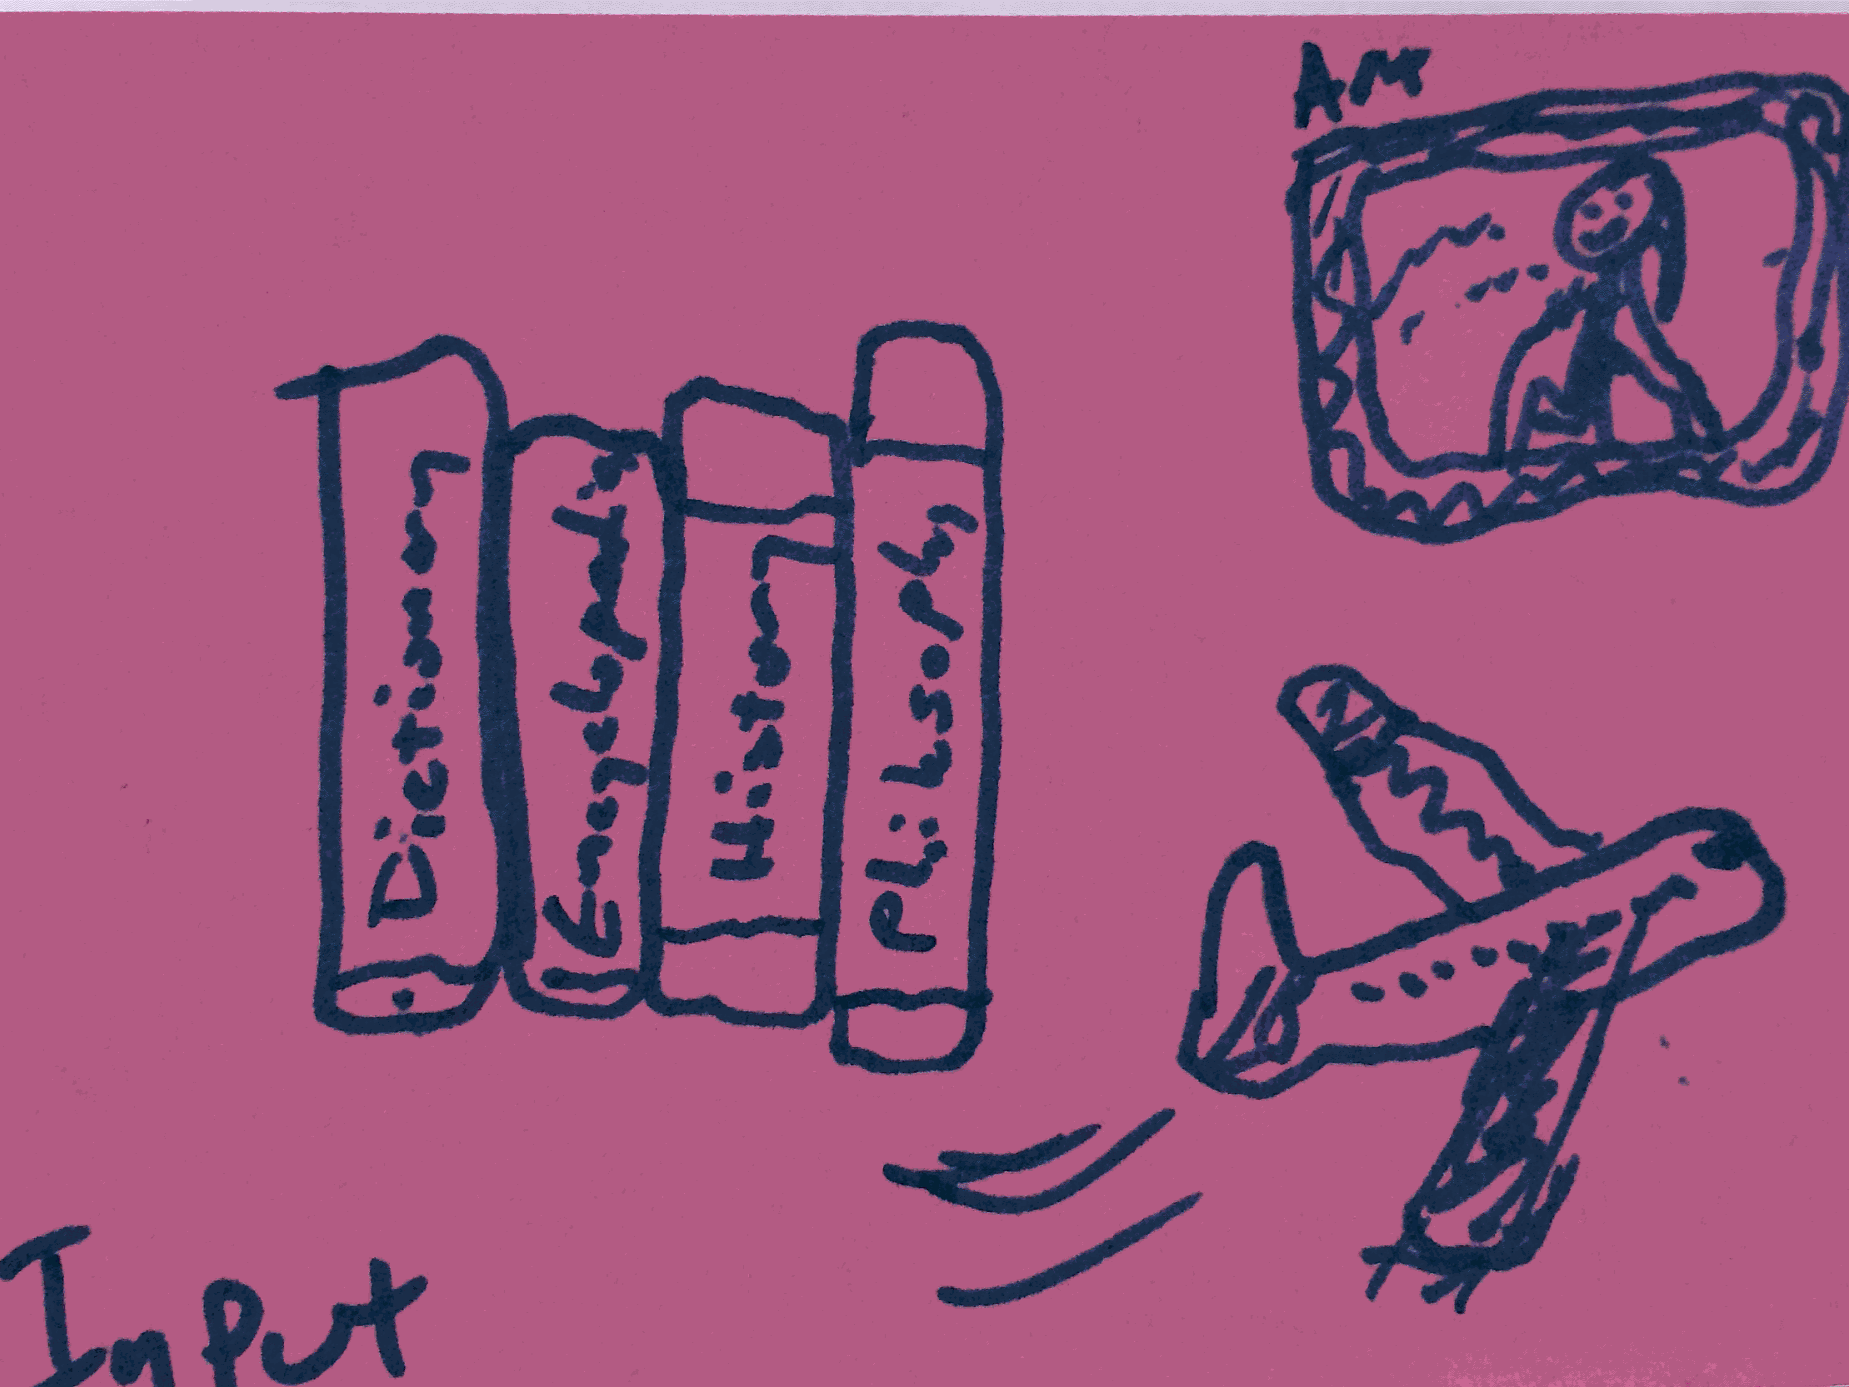 Input Strengthsfinder Books Aeroplane Collectors' Items